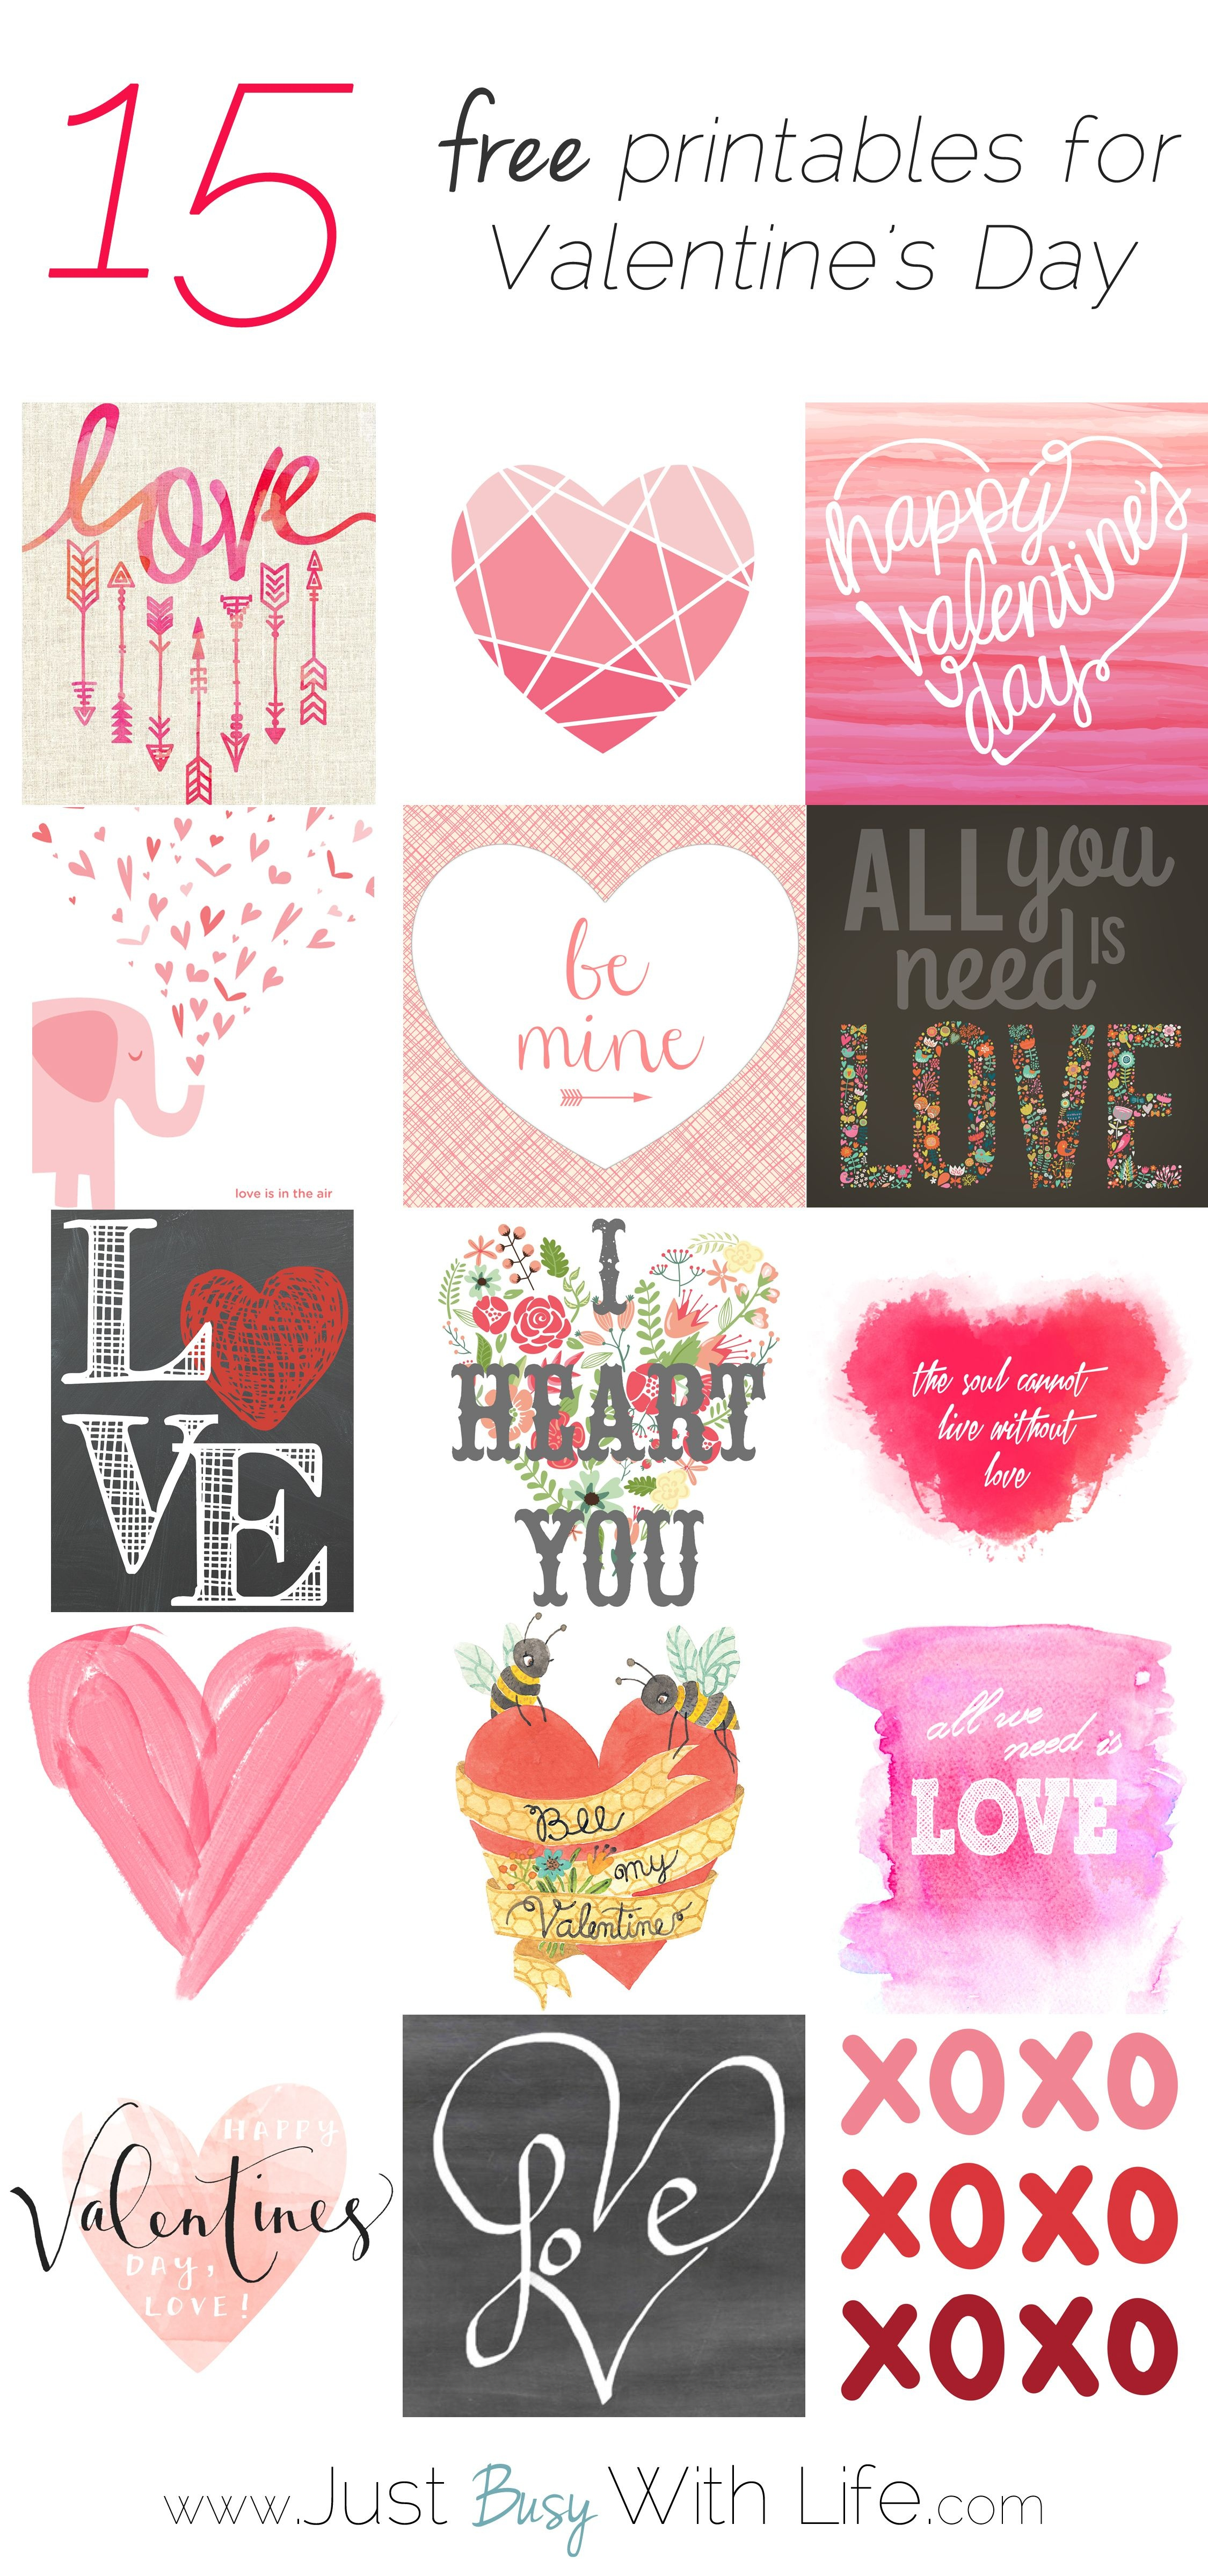 15 Free Valentine's Day Printables | Just Busy With Life | For - Free Printable Valentine's Day Decorations